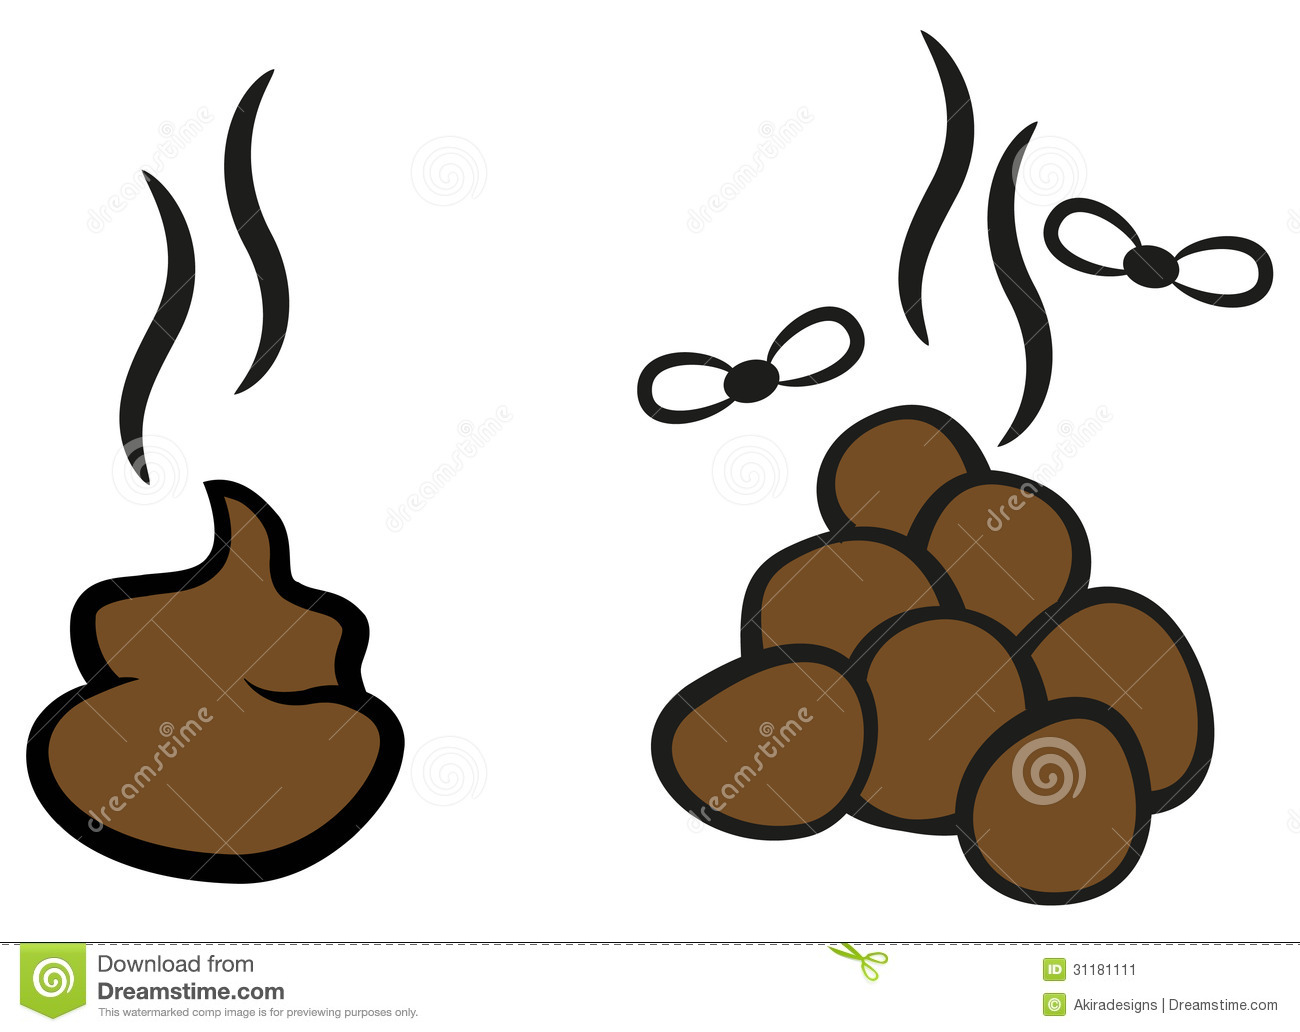 Cartoon Poop With Flies Stock Image - Image: 31181111